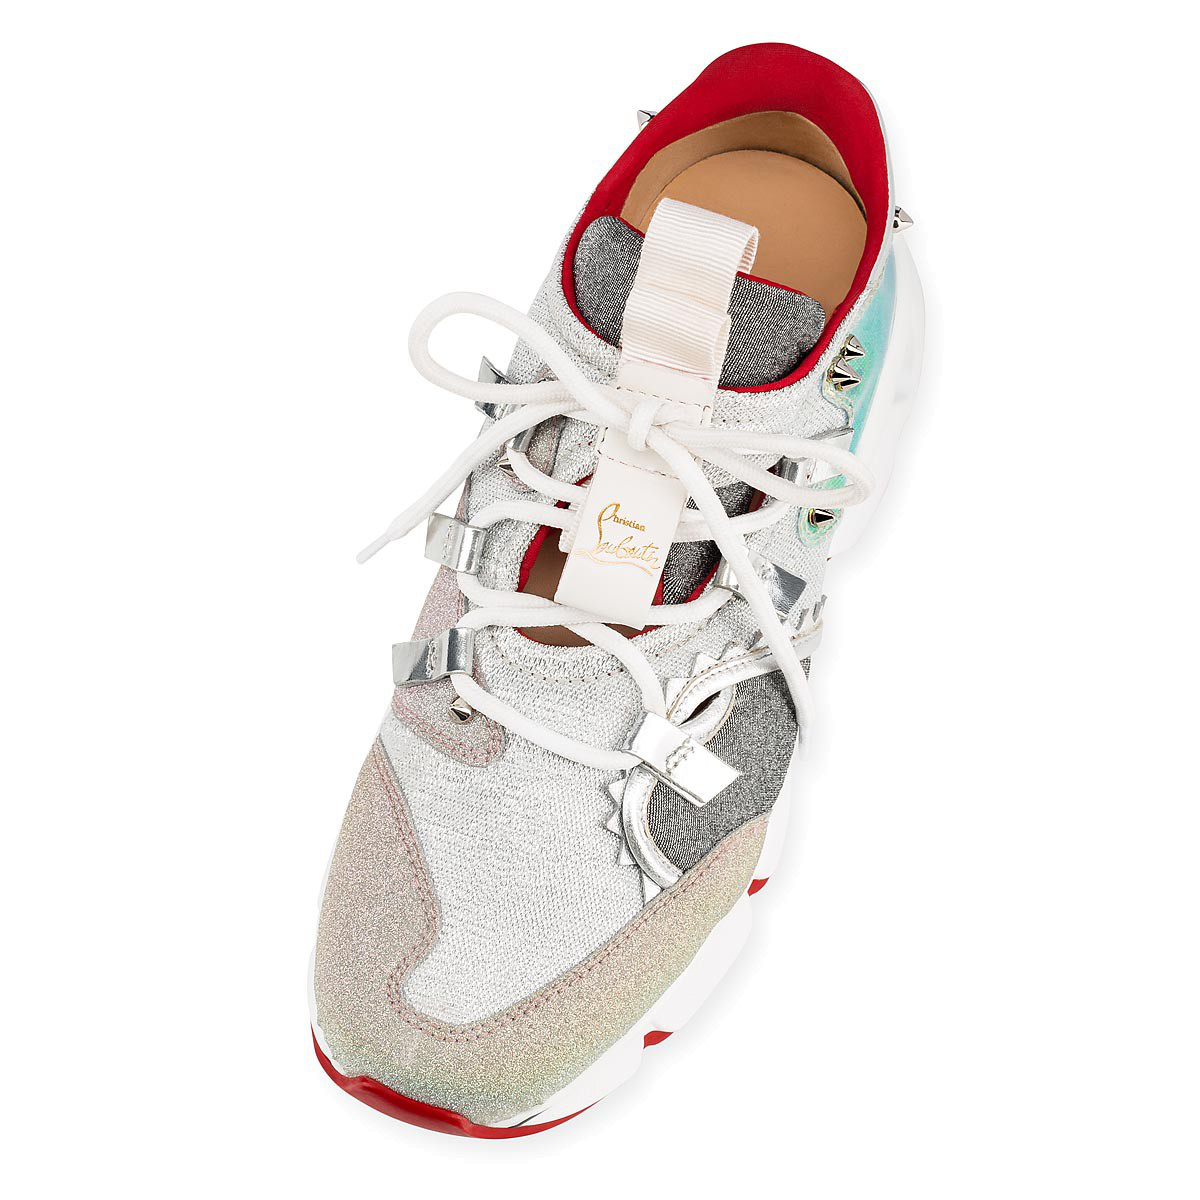 f01462425d4a Christian Louboutin Red Runner Donna Flat Red Sole Sneakers In Silver Multi